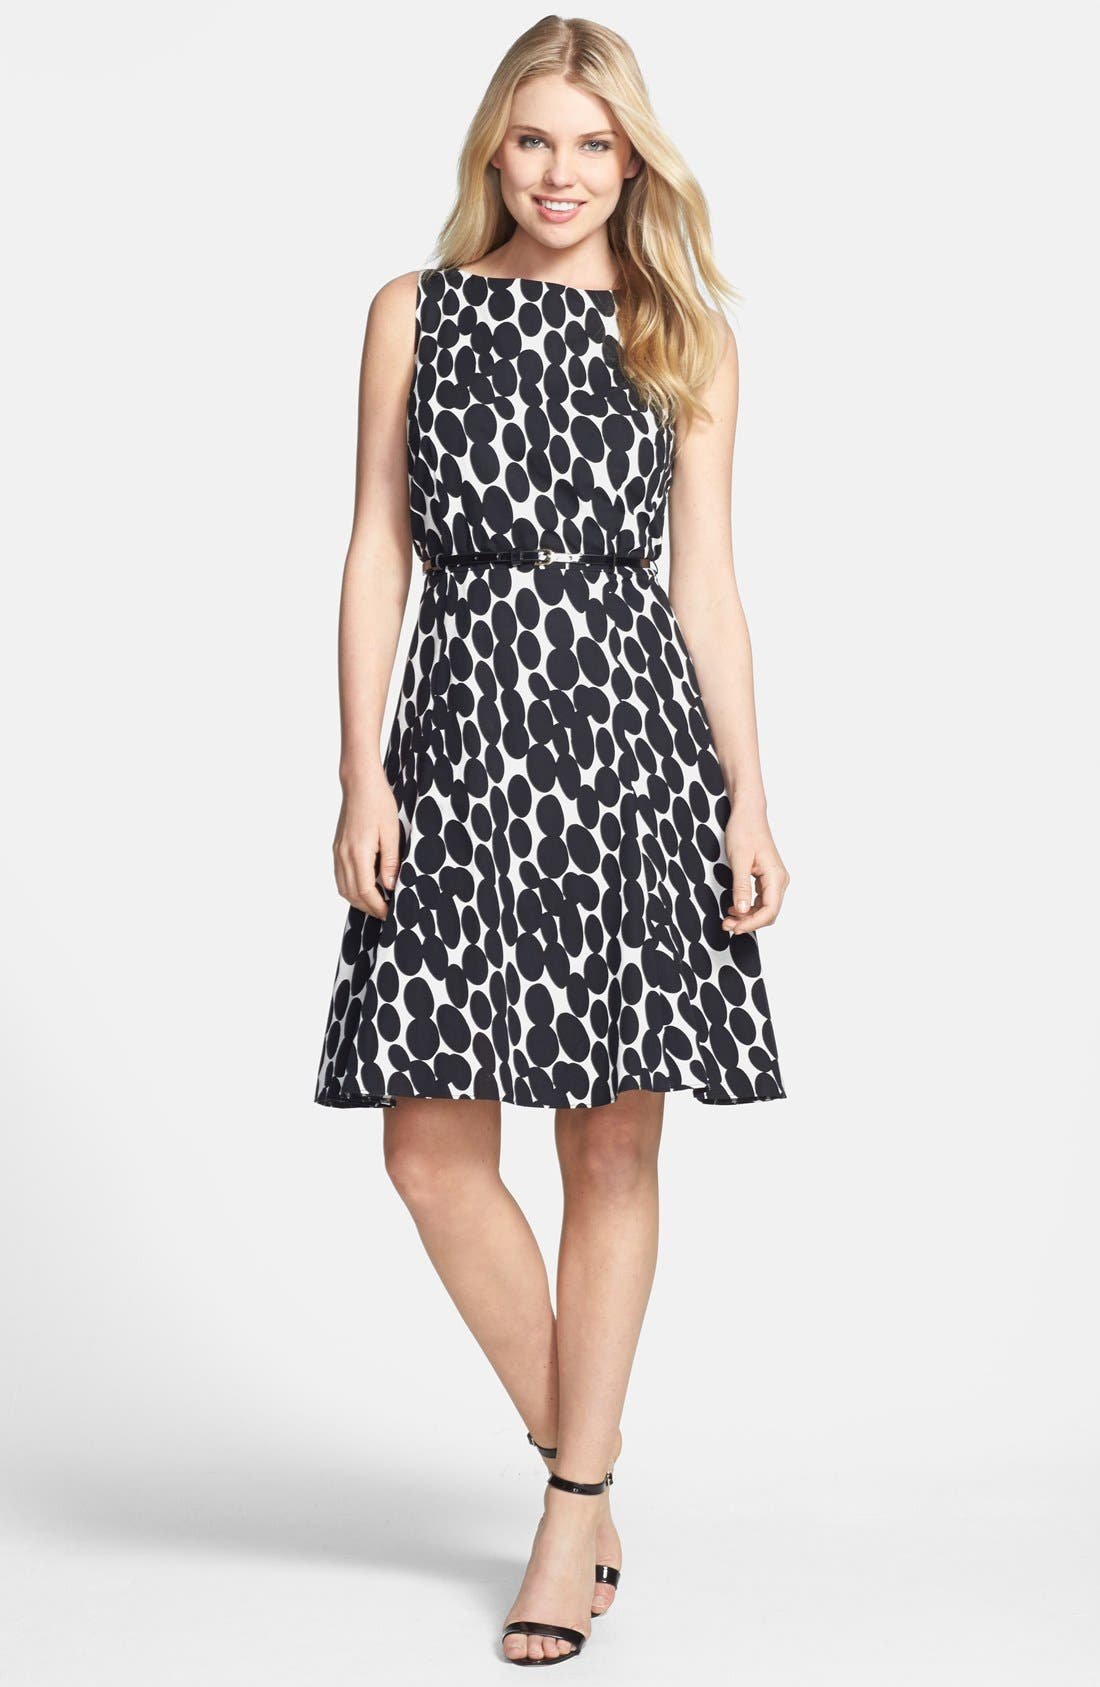 Alternate Image 1 Selected - Wallis 'Oval Spots' Fit & Flare Dress